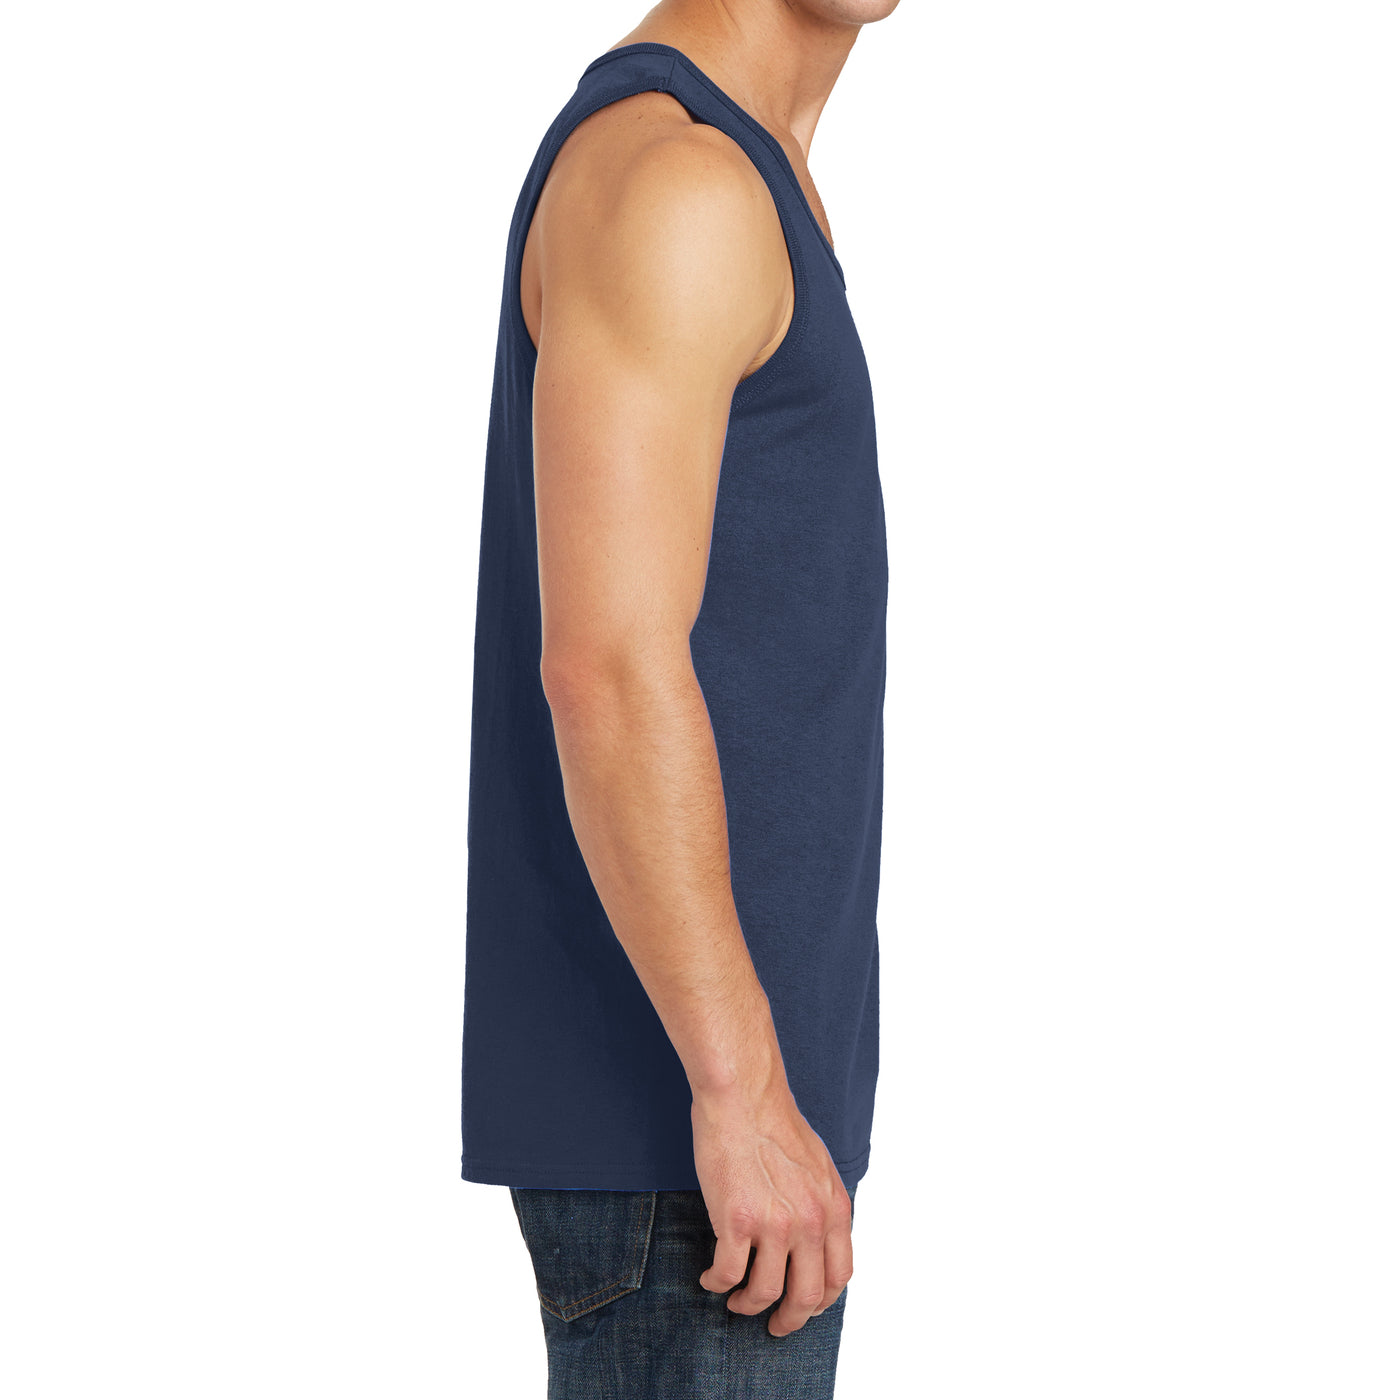 Men's Core Cotton Tank Top - Navy - Side